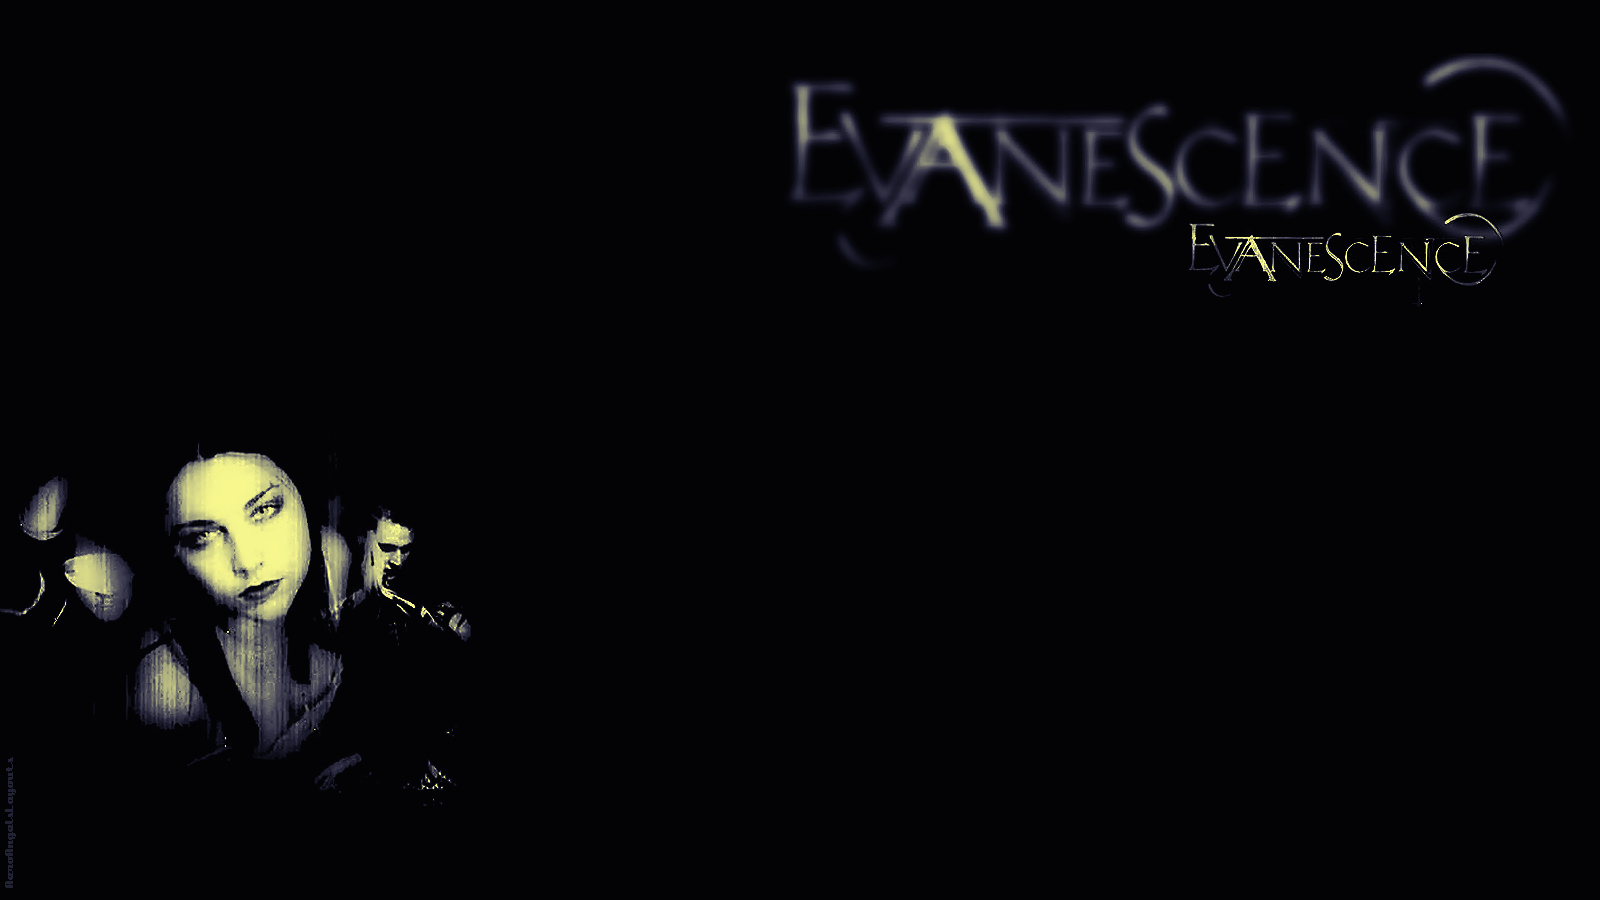 Evanescence Logo Wallpaper submited images 1600x900